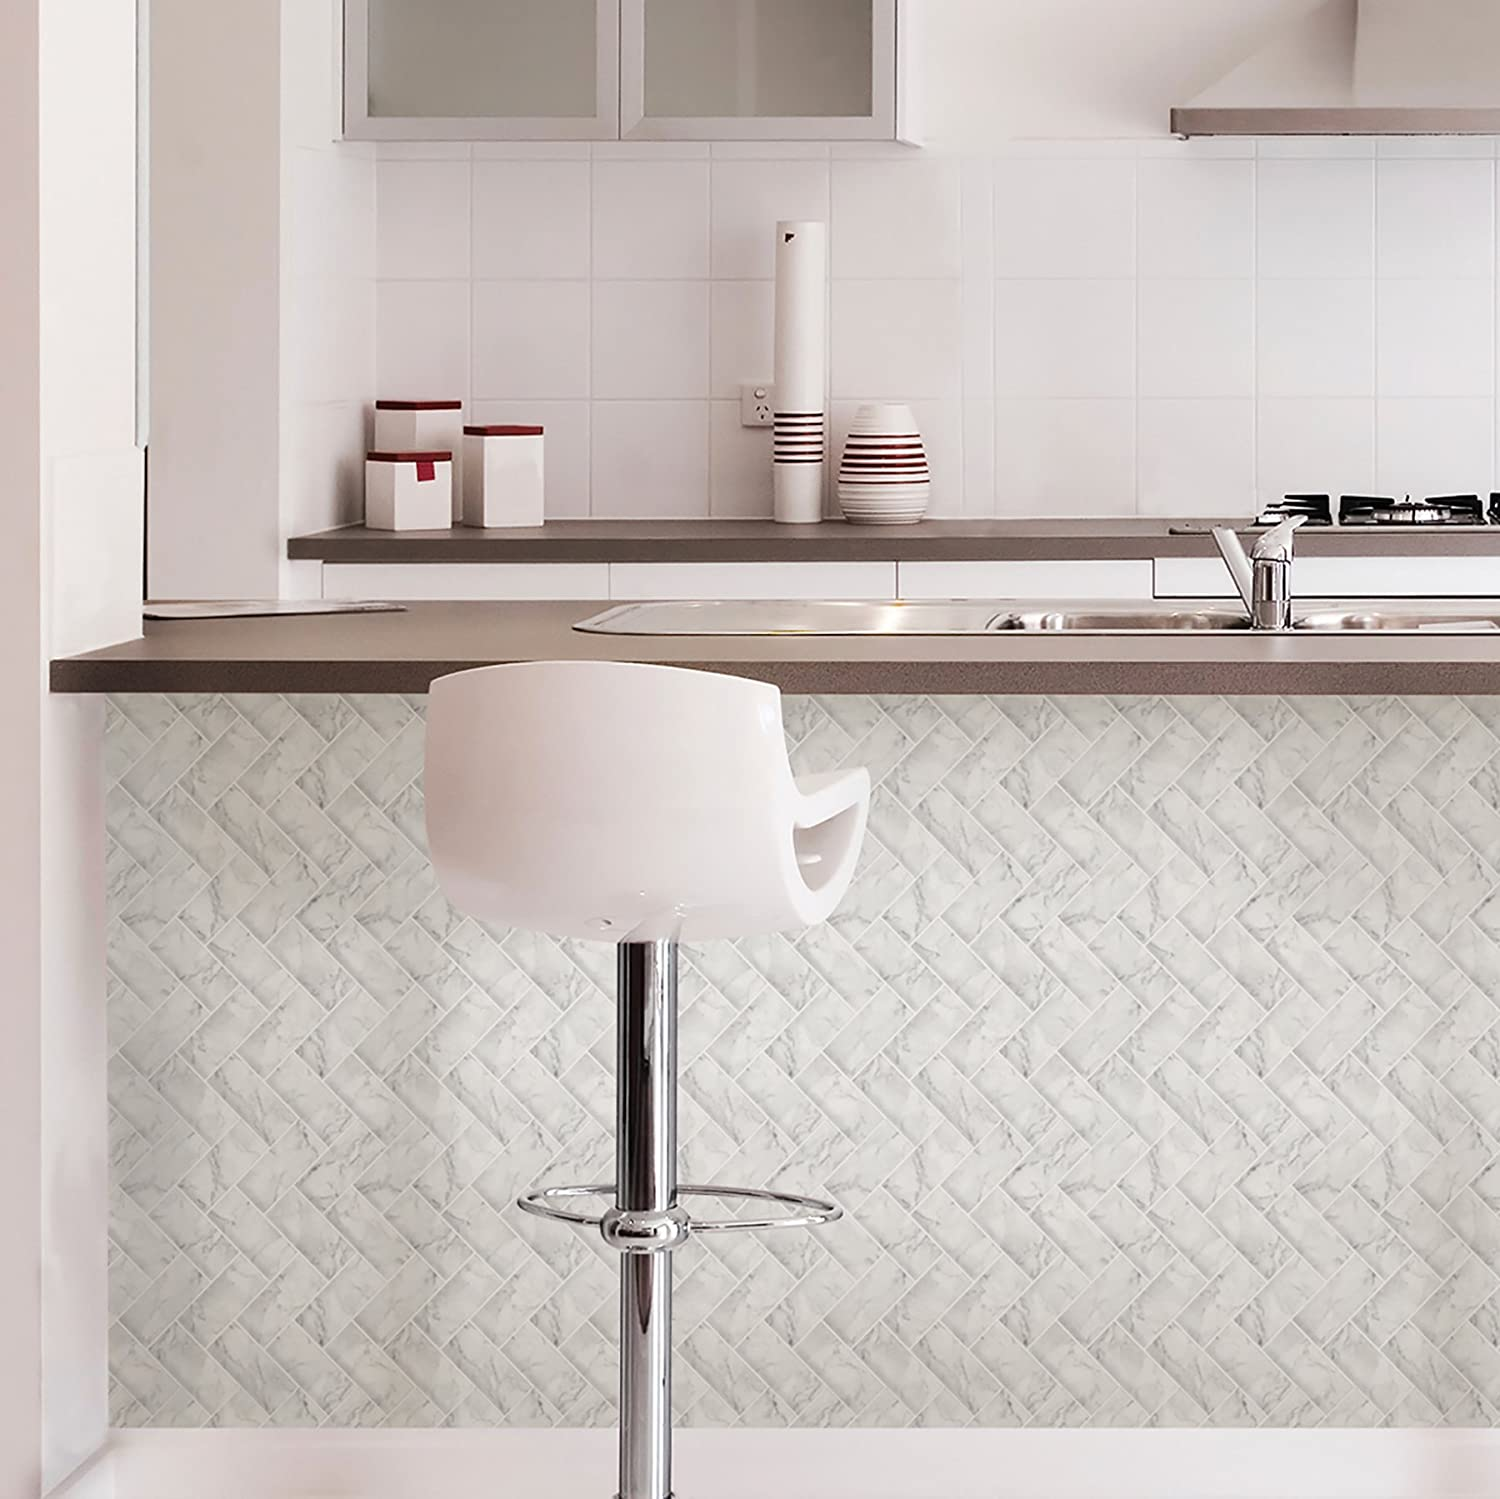 In Home NH2358 Herringbone Carrara Peel & Stick Backsplash Tiles ...